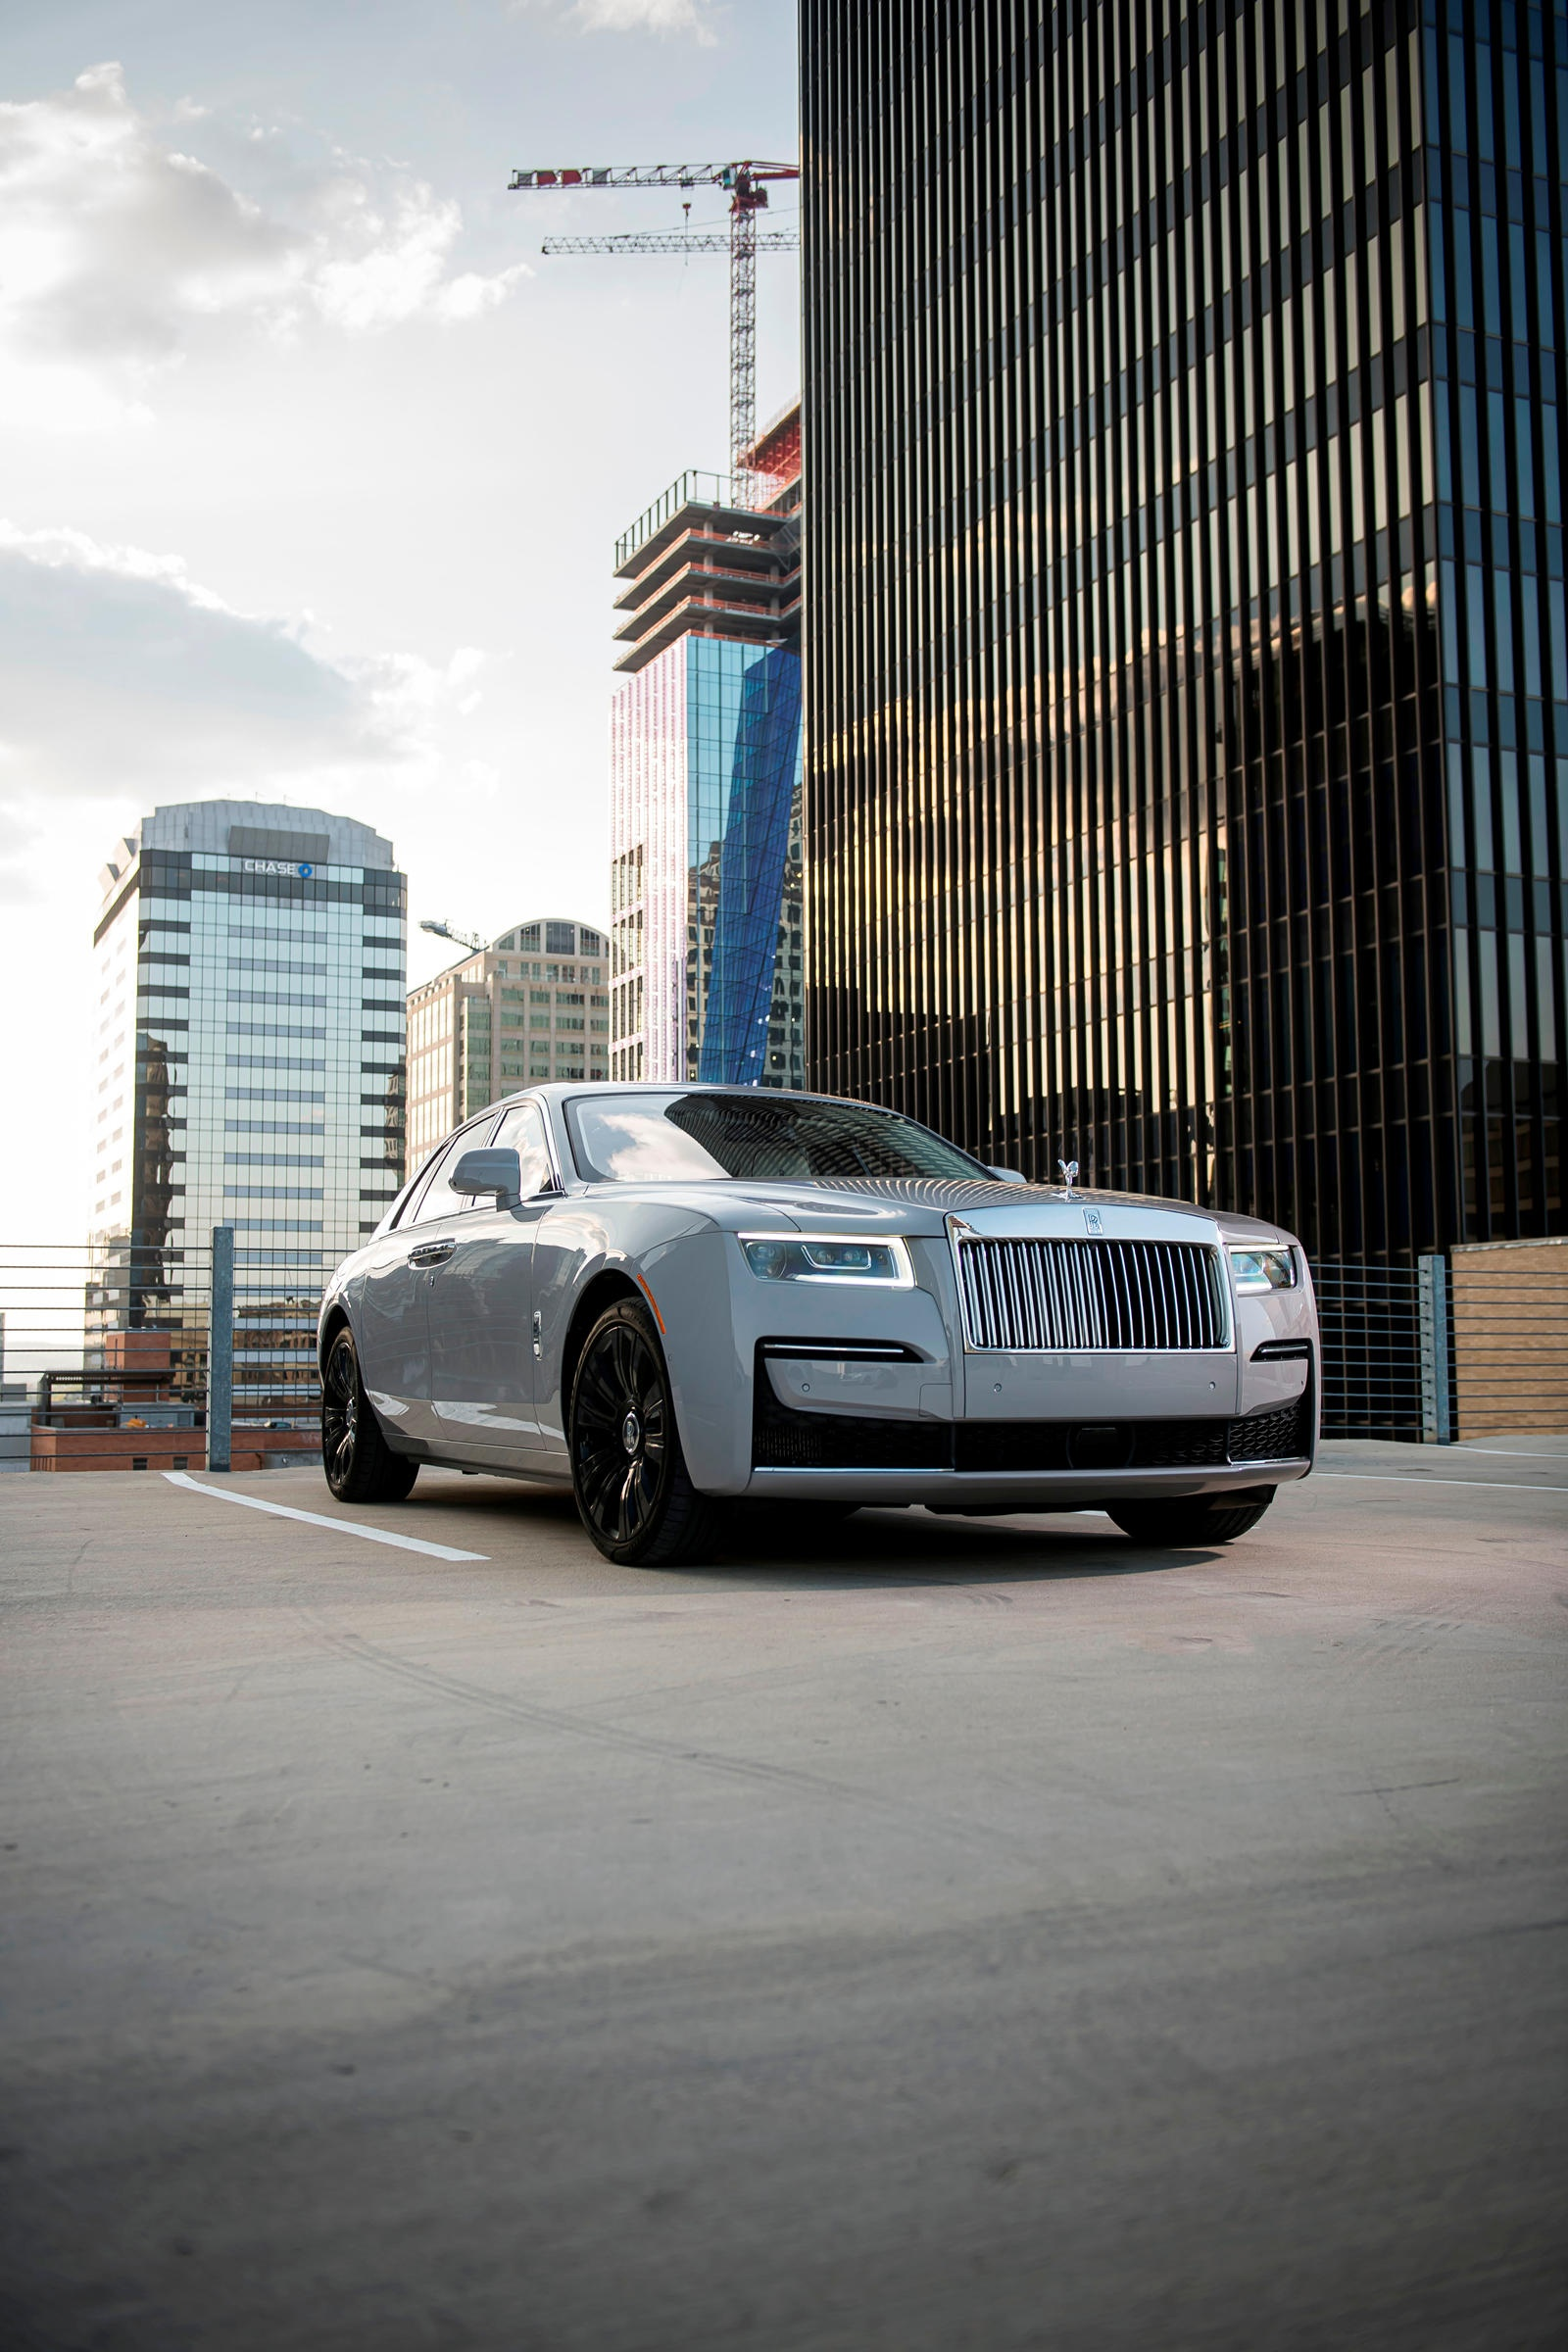 Danh gia Rolls-Royce Ghost 2021 anh 9